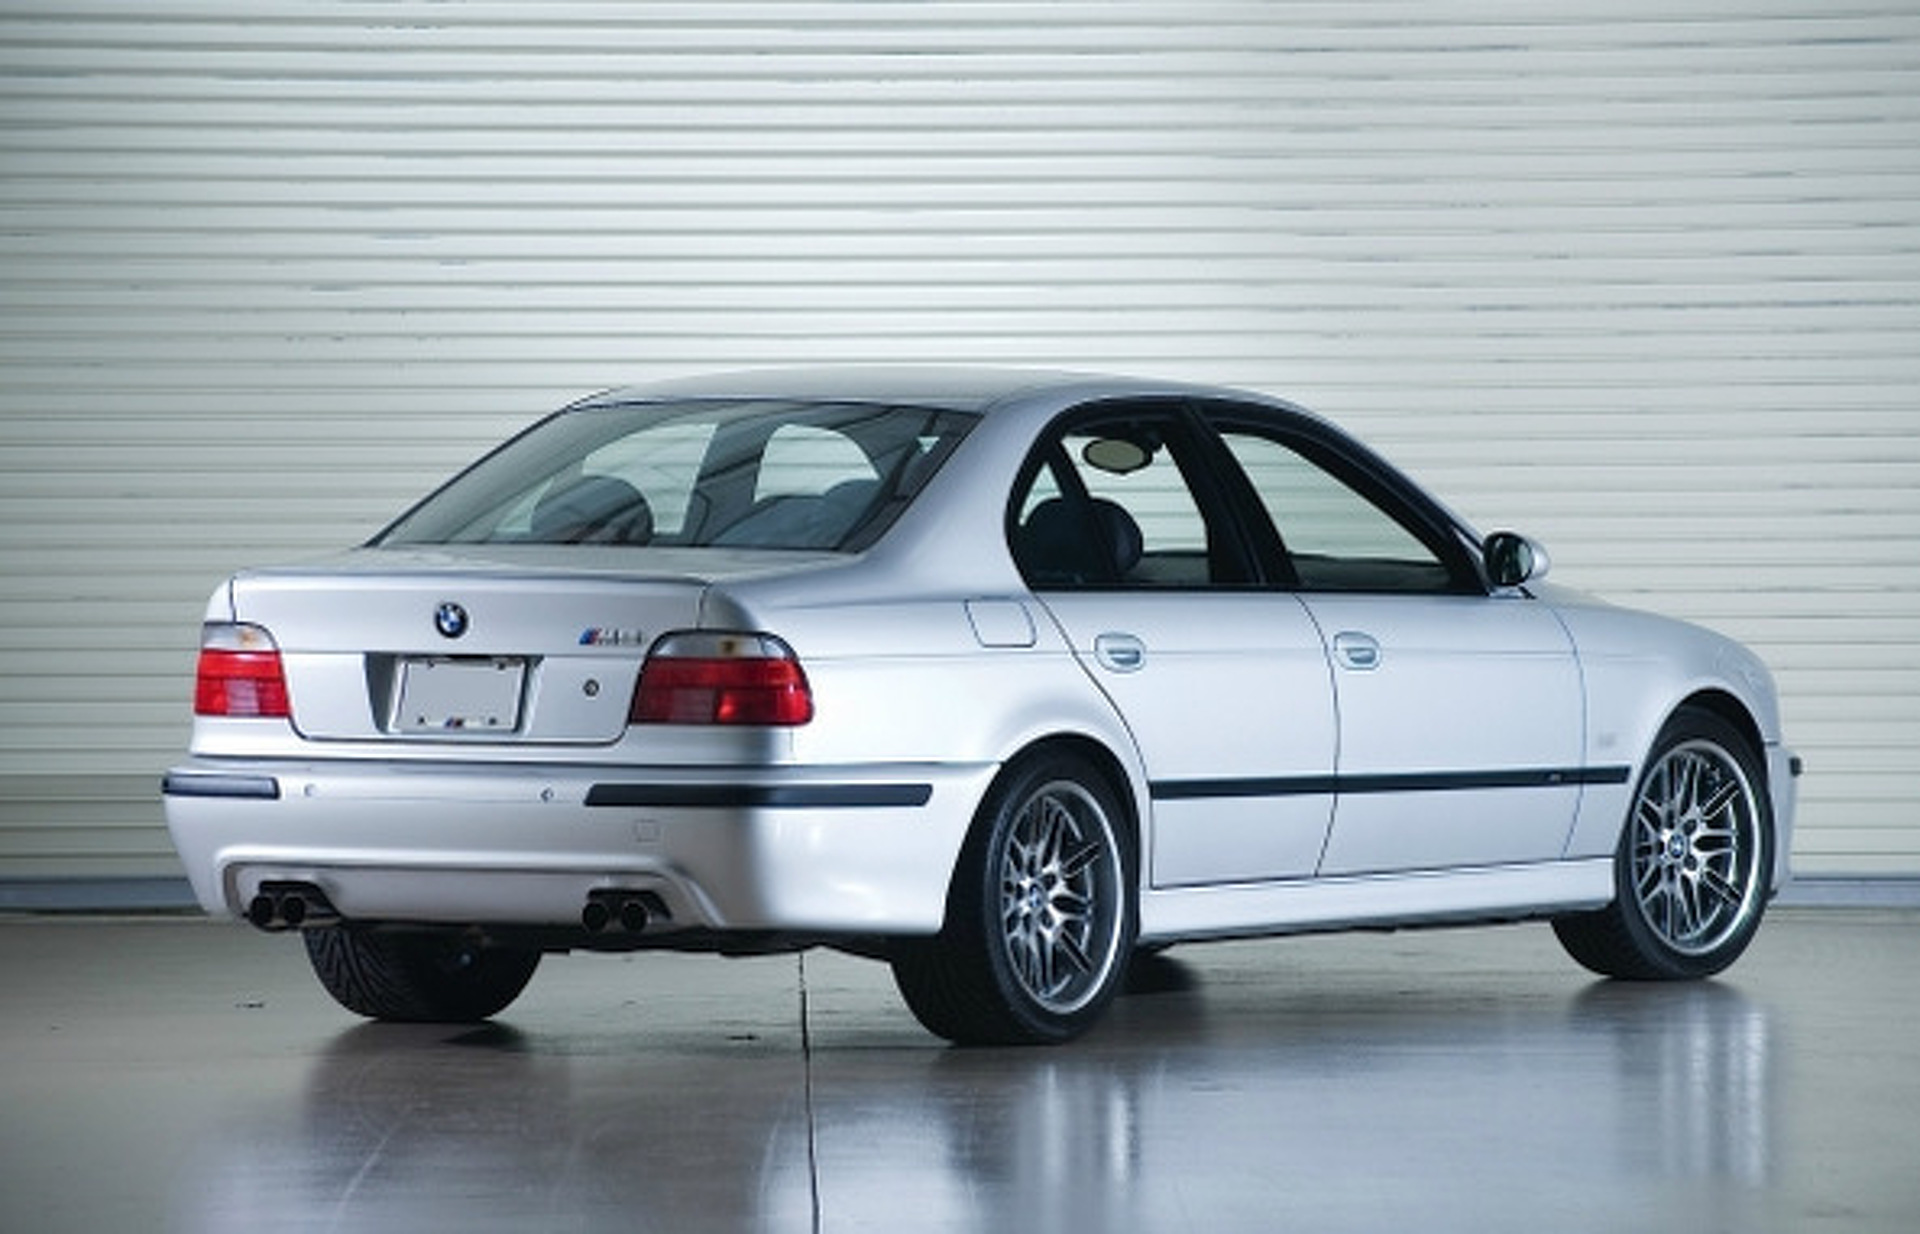 And The Evolution Of M - Bmw 321i